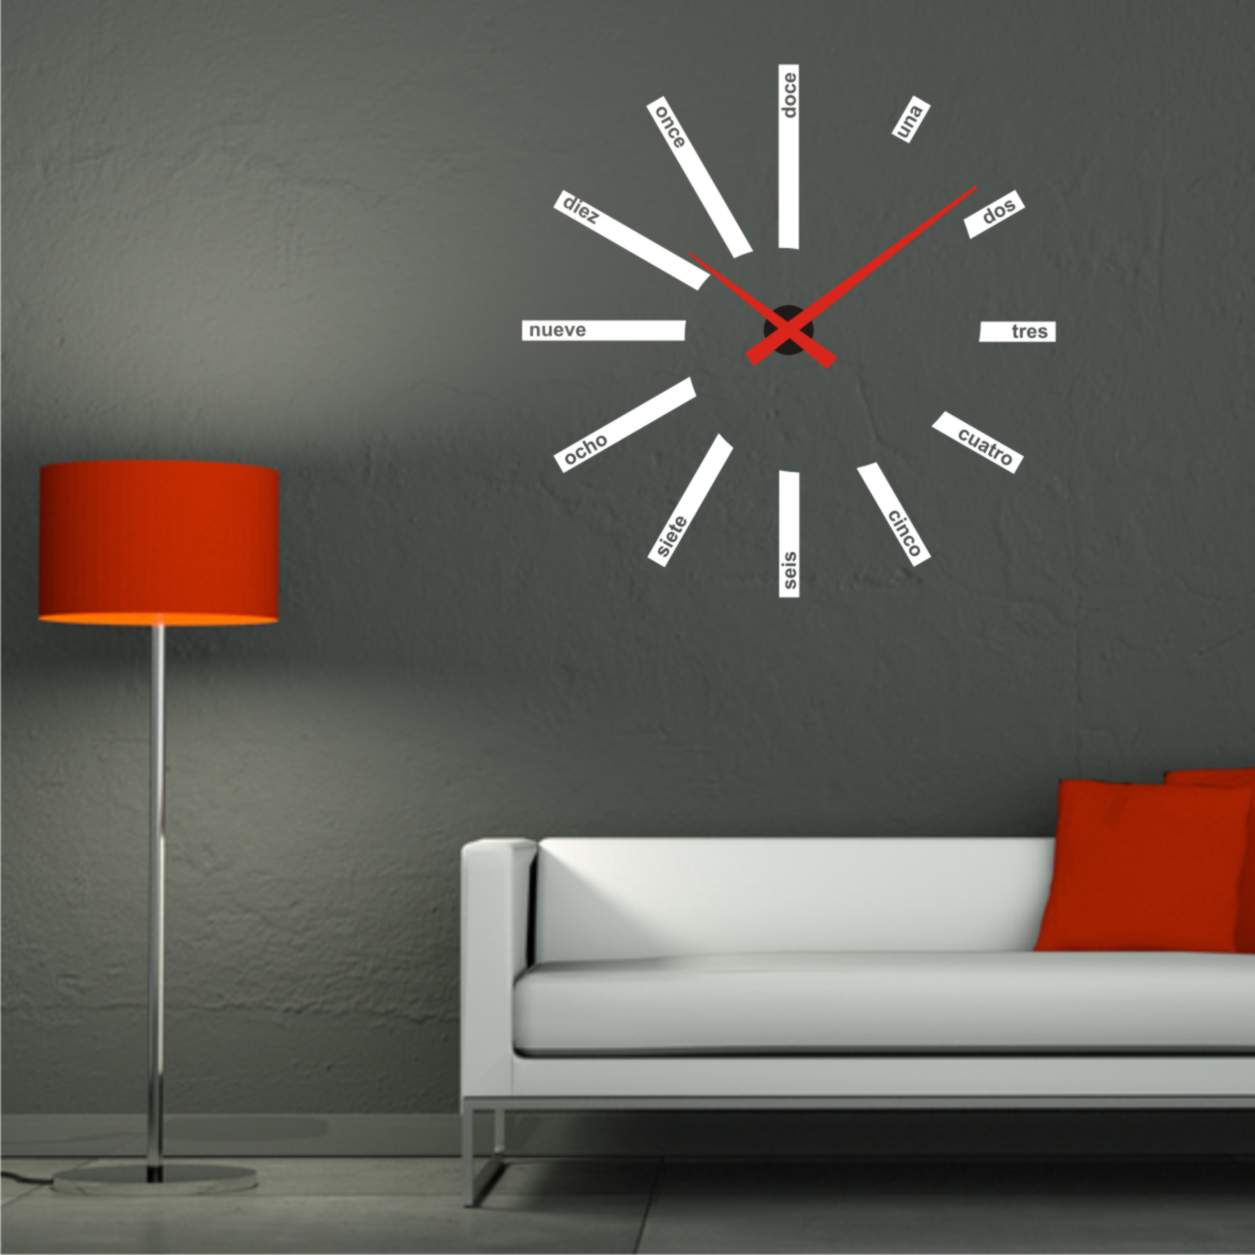 Tipos de relojes de pared cu les hay decoraci n de for Relojes para salon